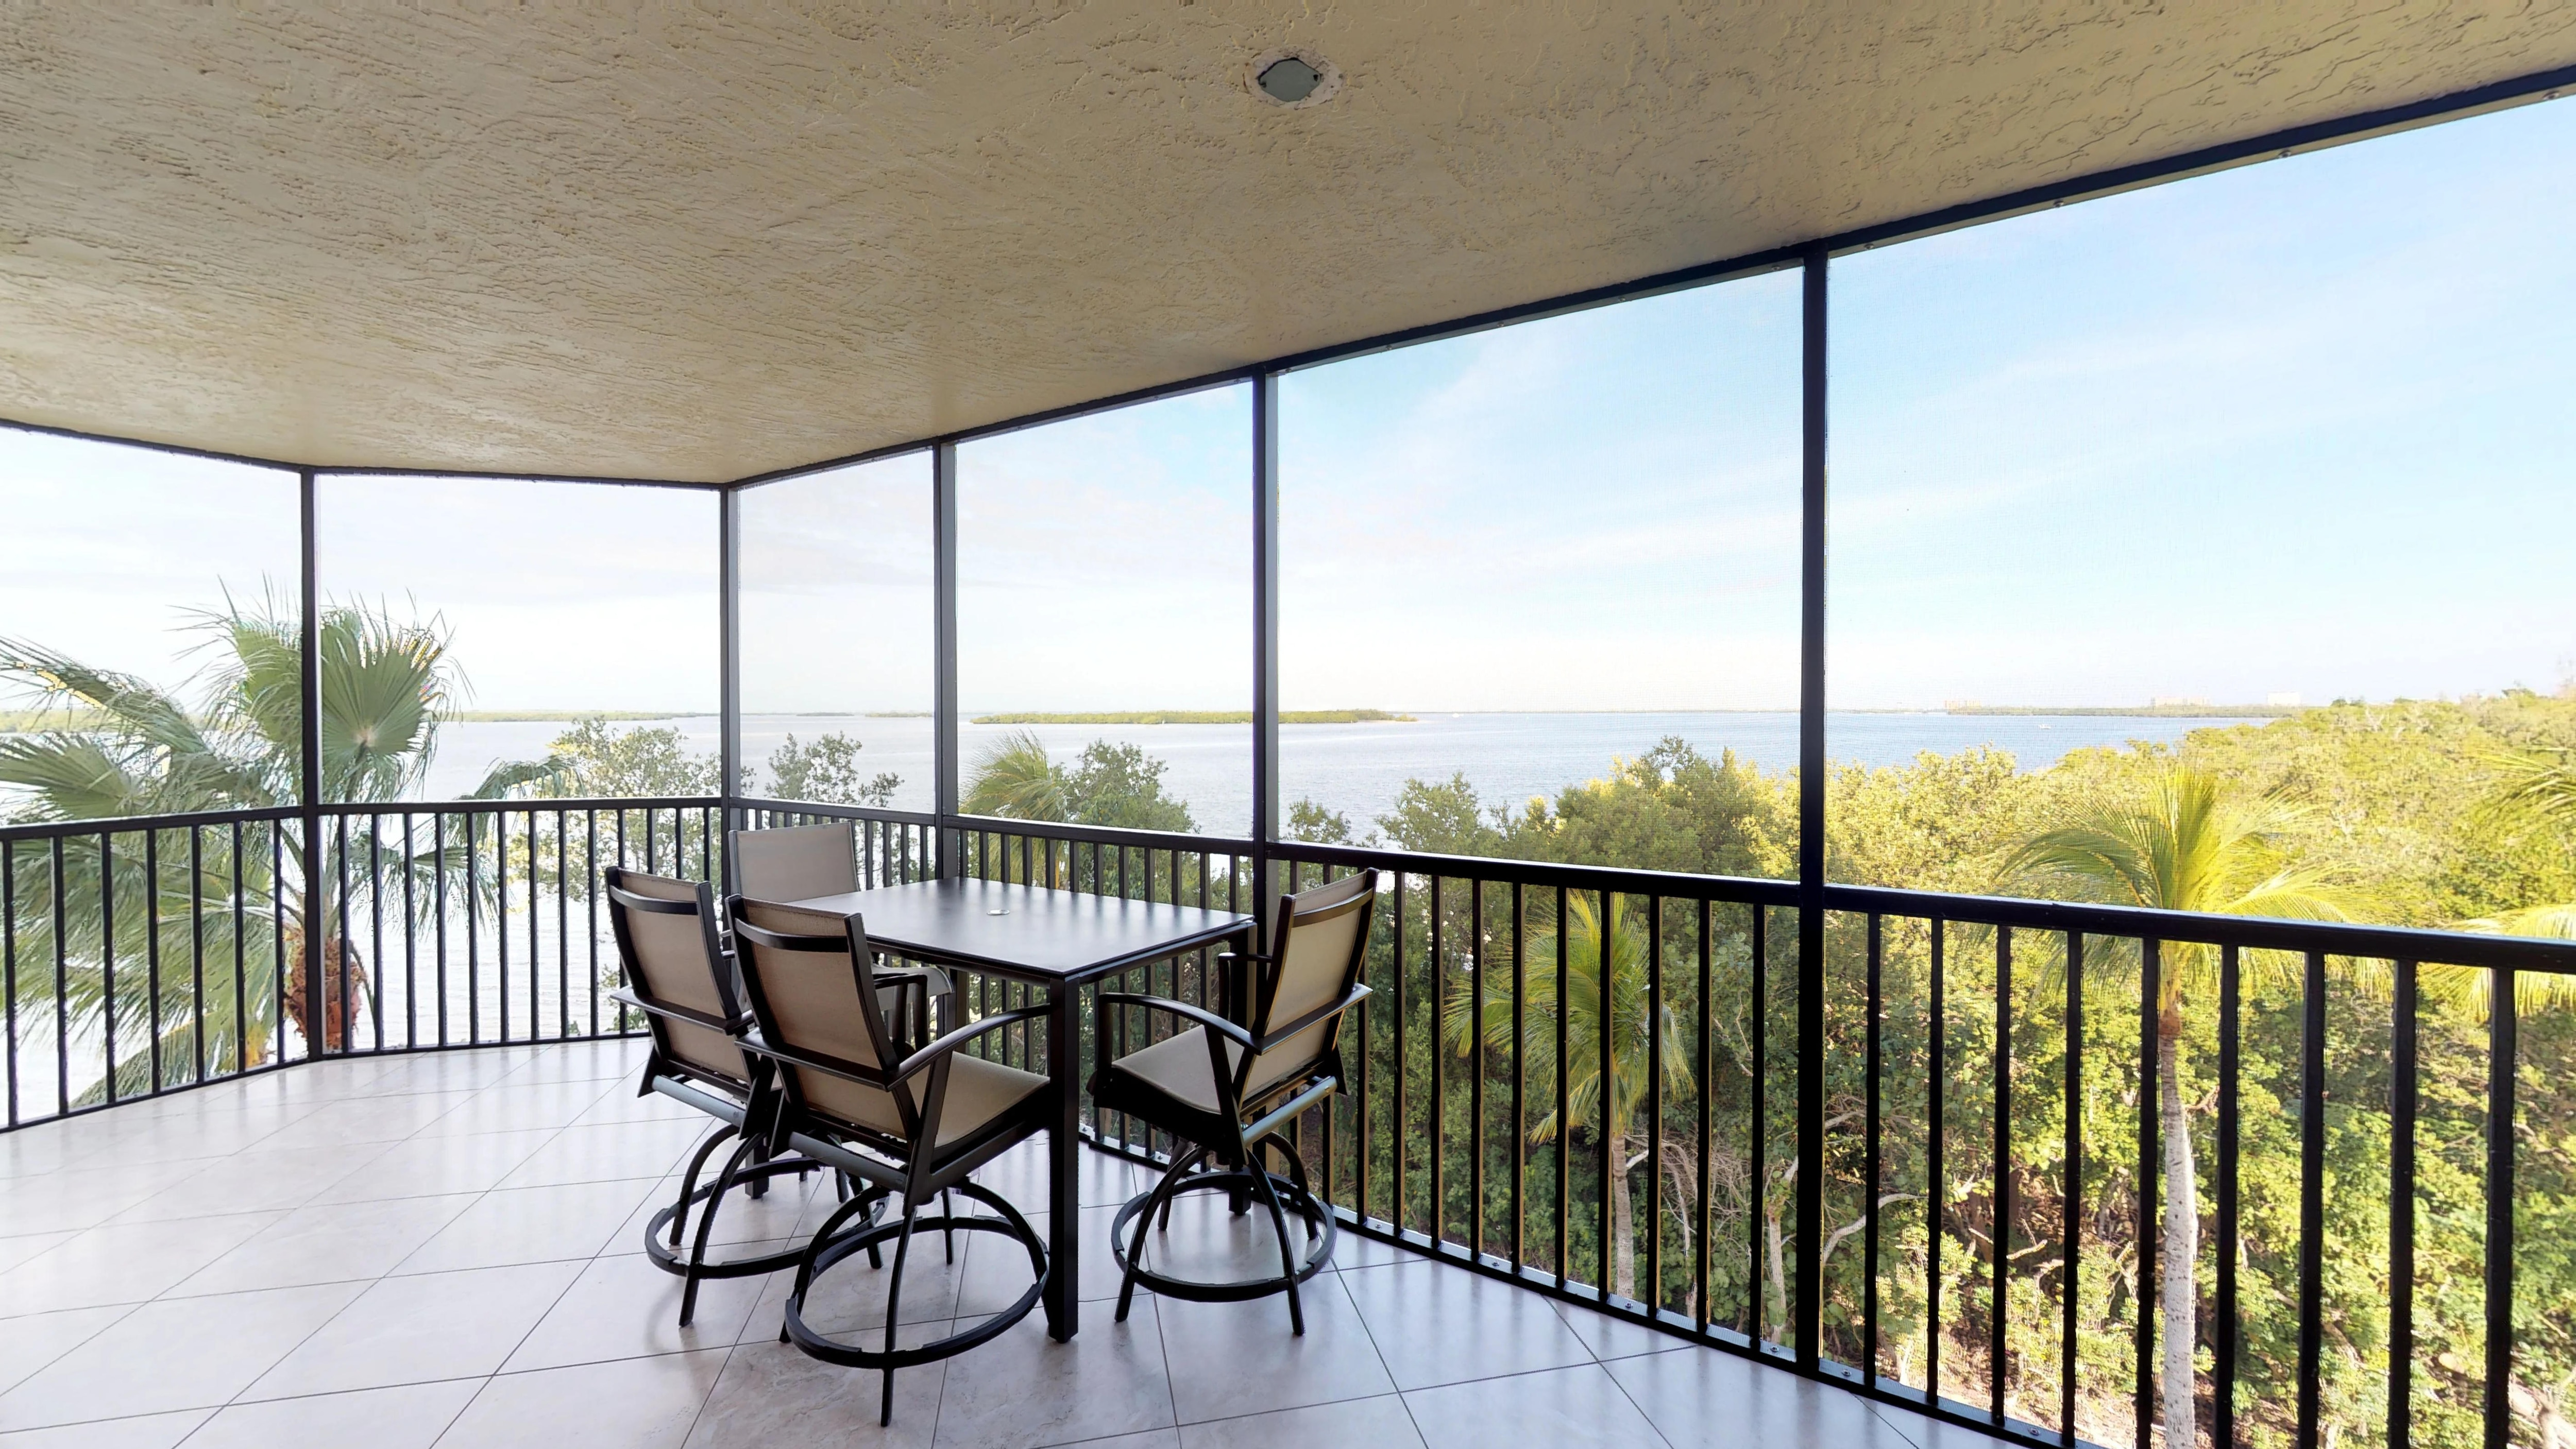 Property Image 1 - Newly Renovated Luxurious Corner Unit at Sanibel Harbour